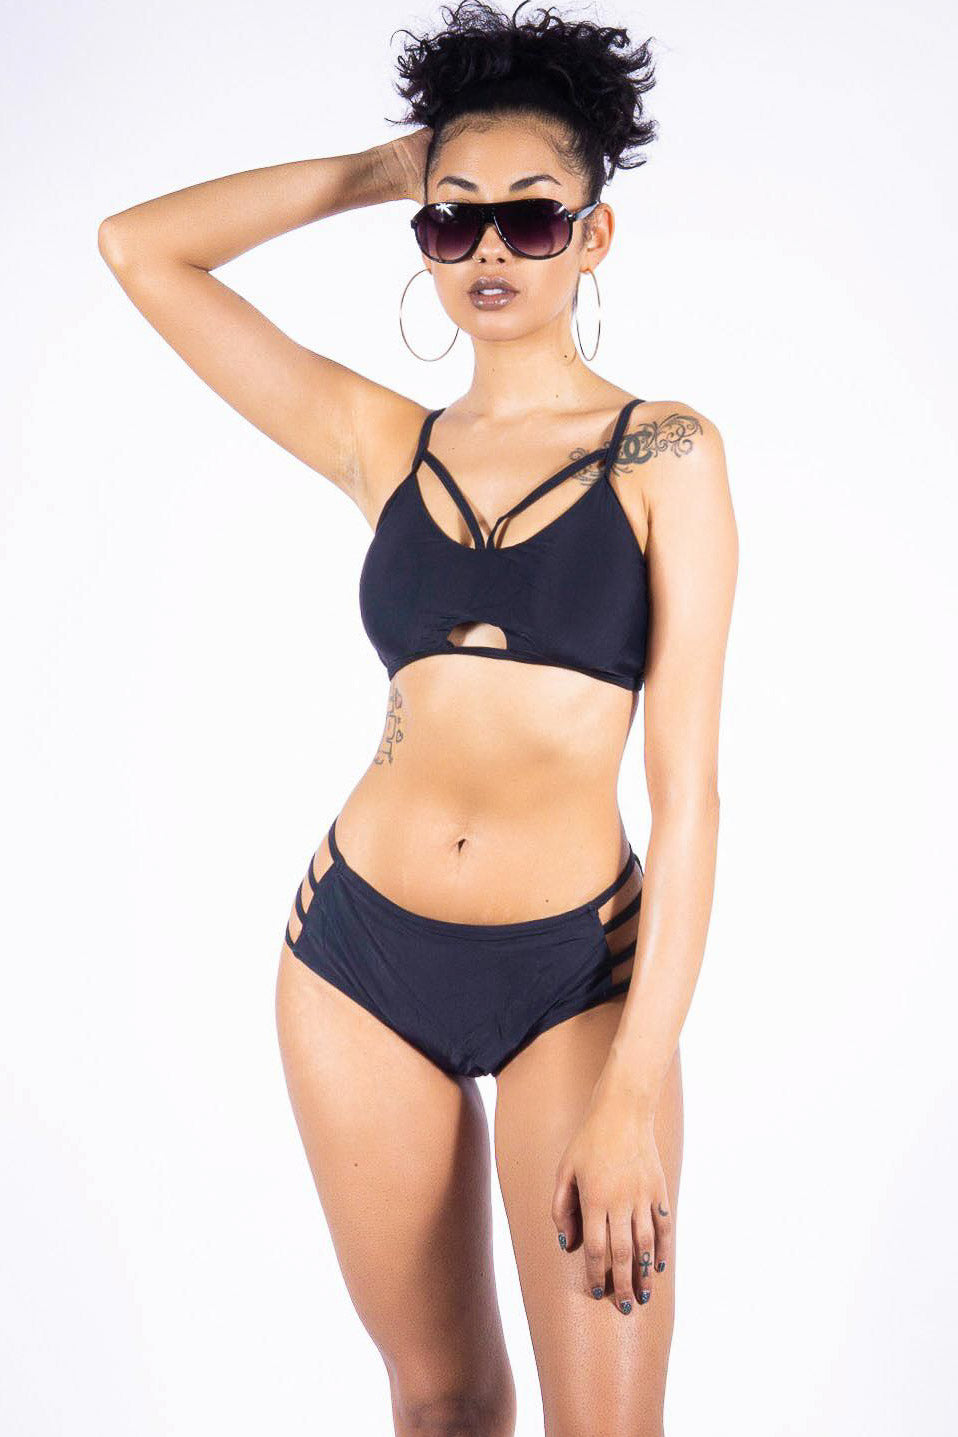 Bathsheba Beach two piece, black